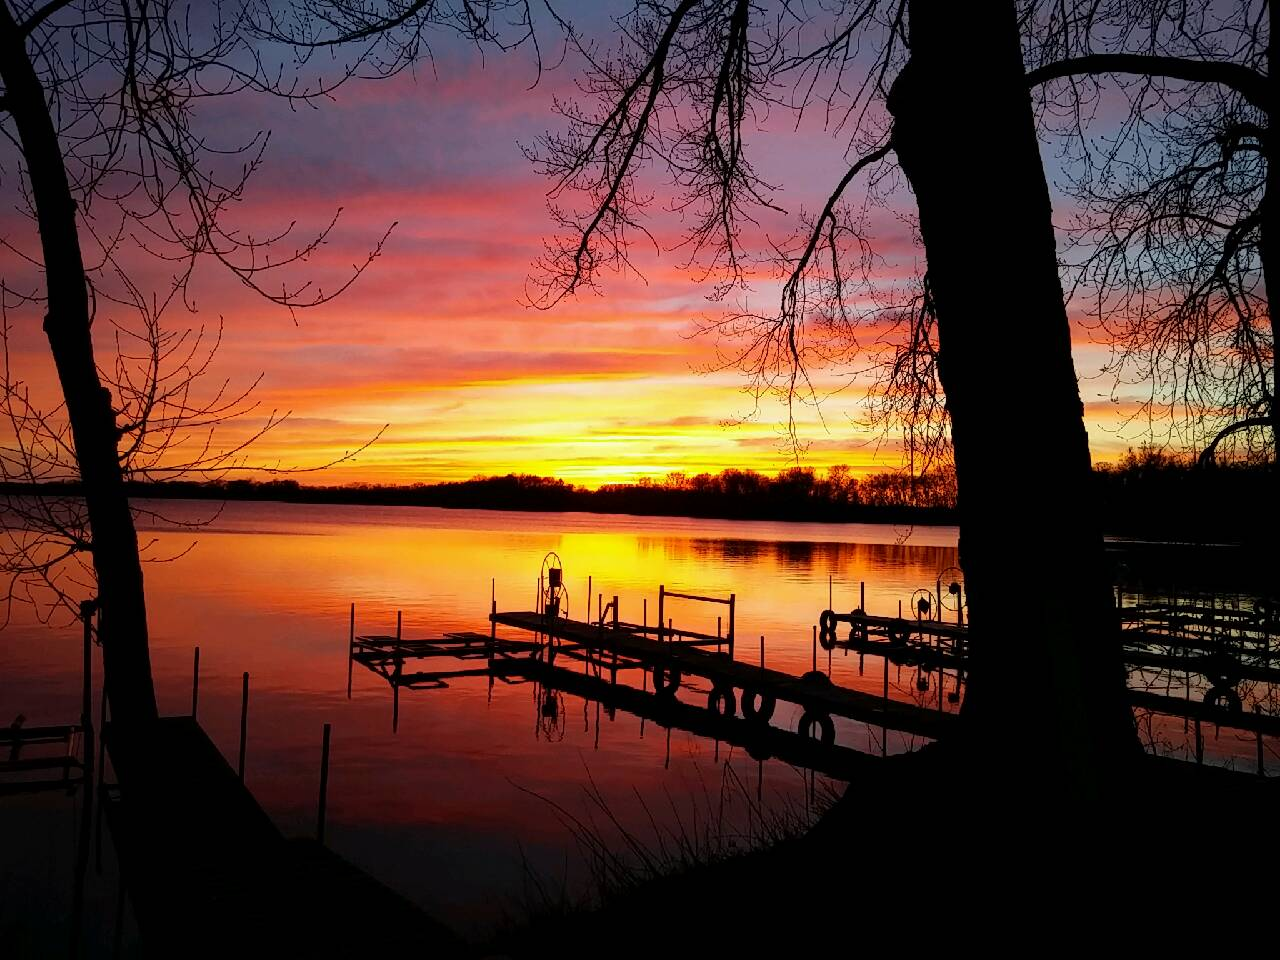 Sunset on Smith Lake